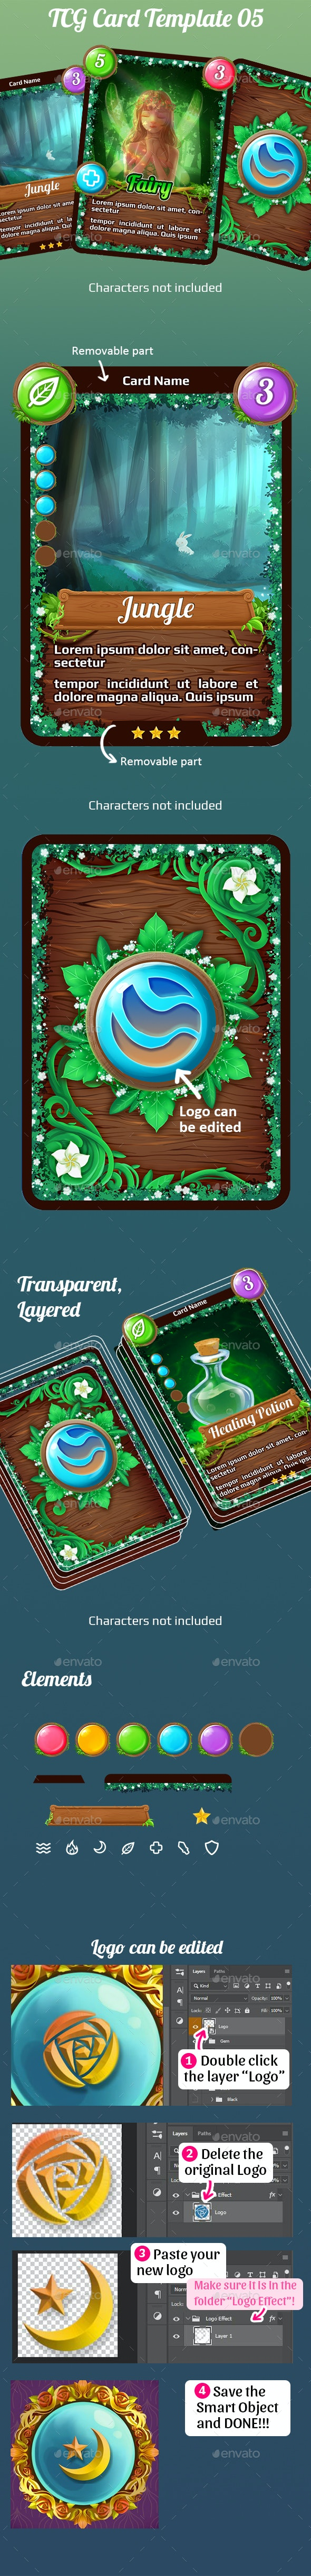 TCG Card Template 05 - Miscellaneous Game Assets